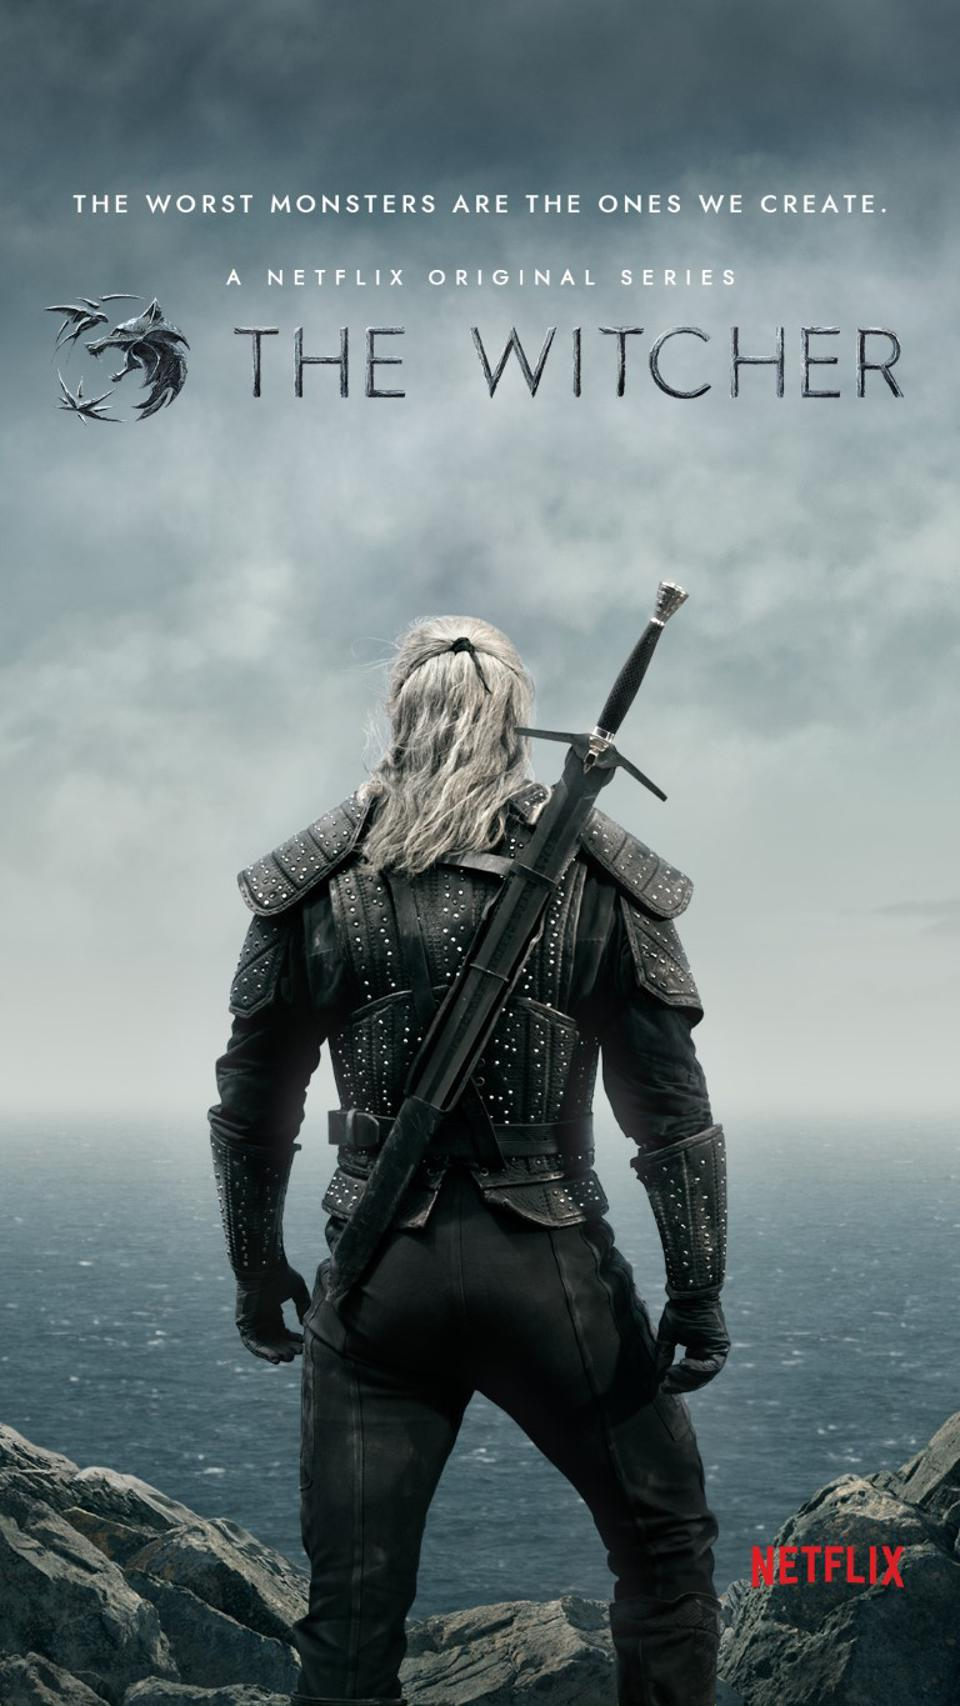 The Witcher Season 2 announced